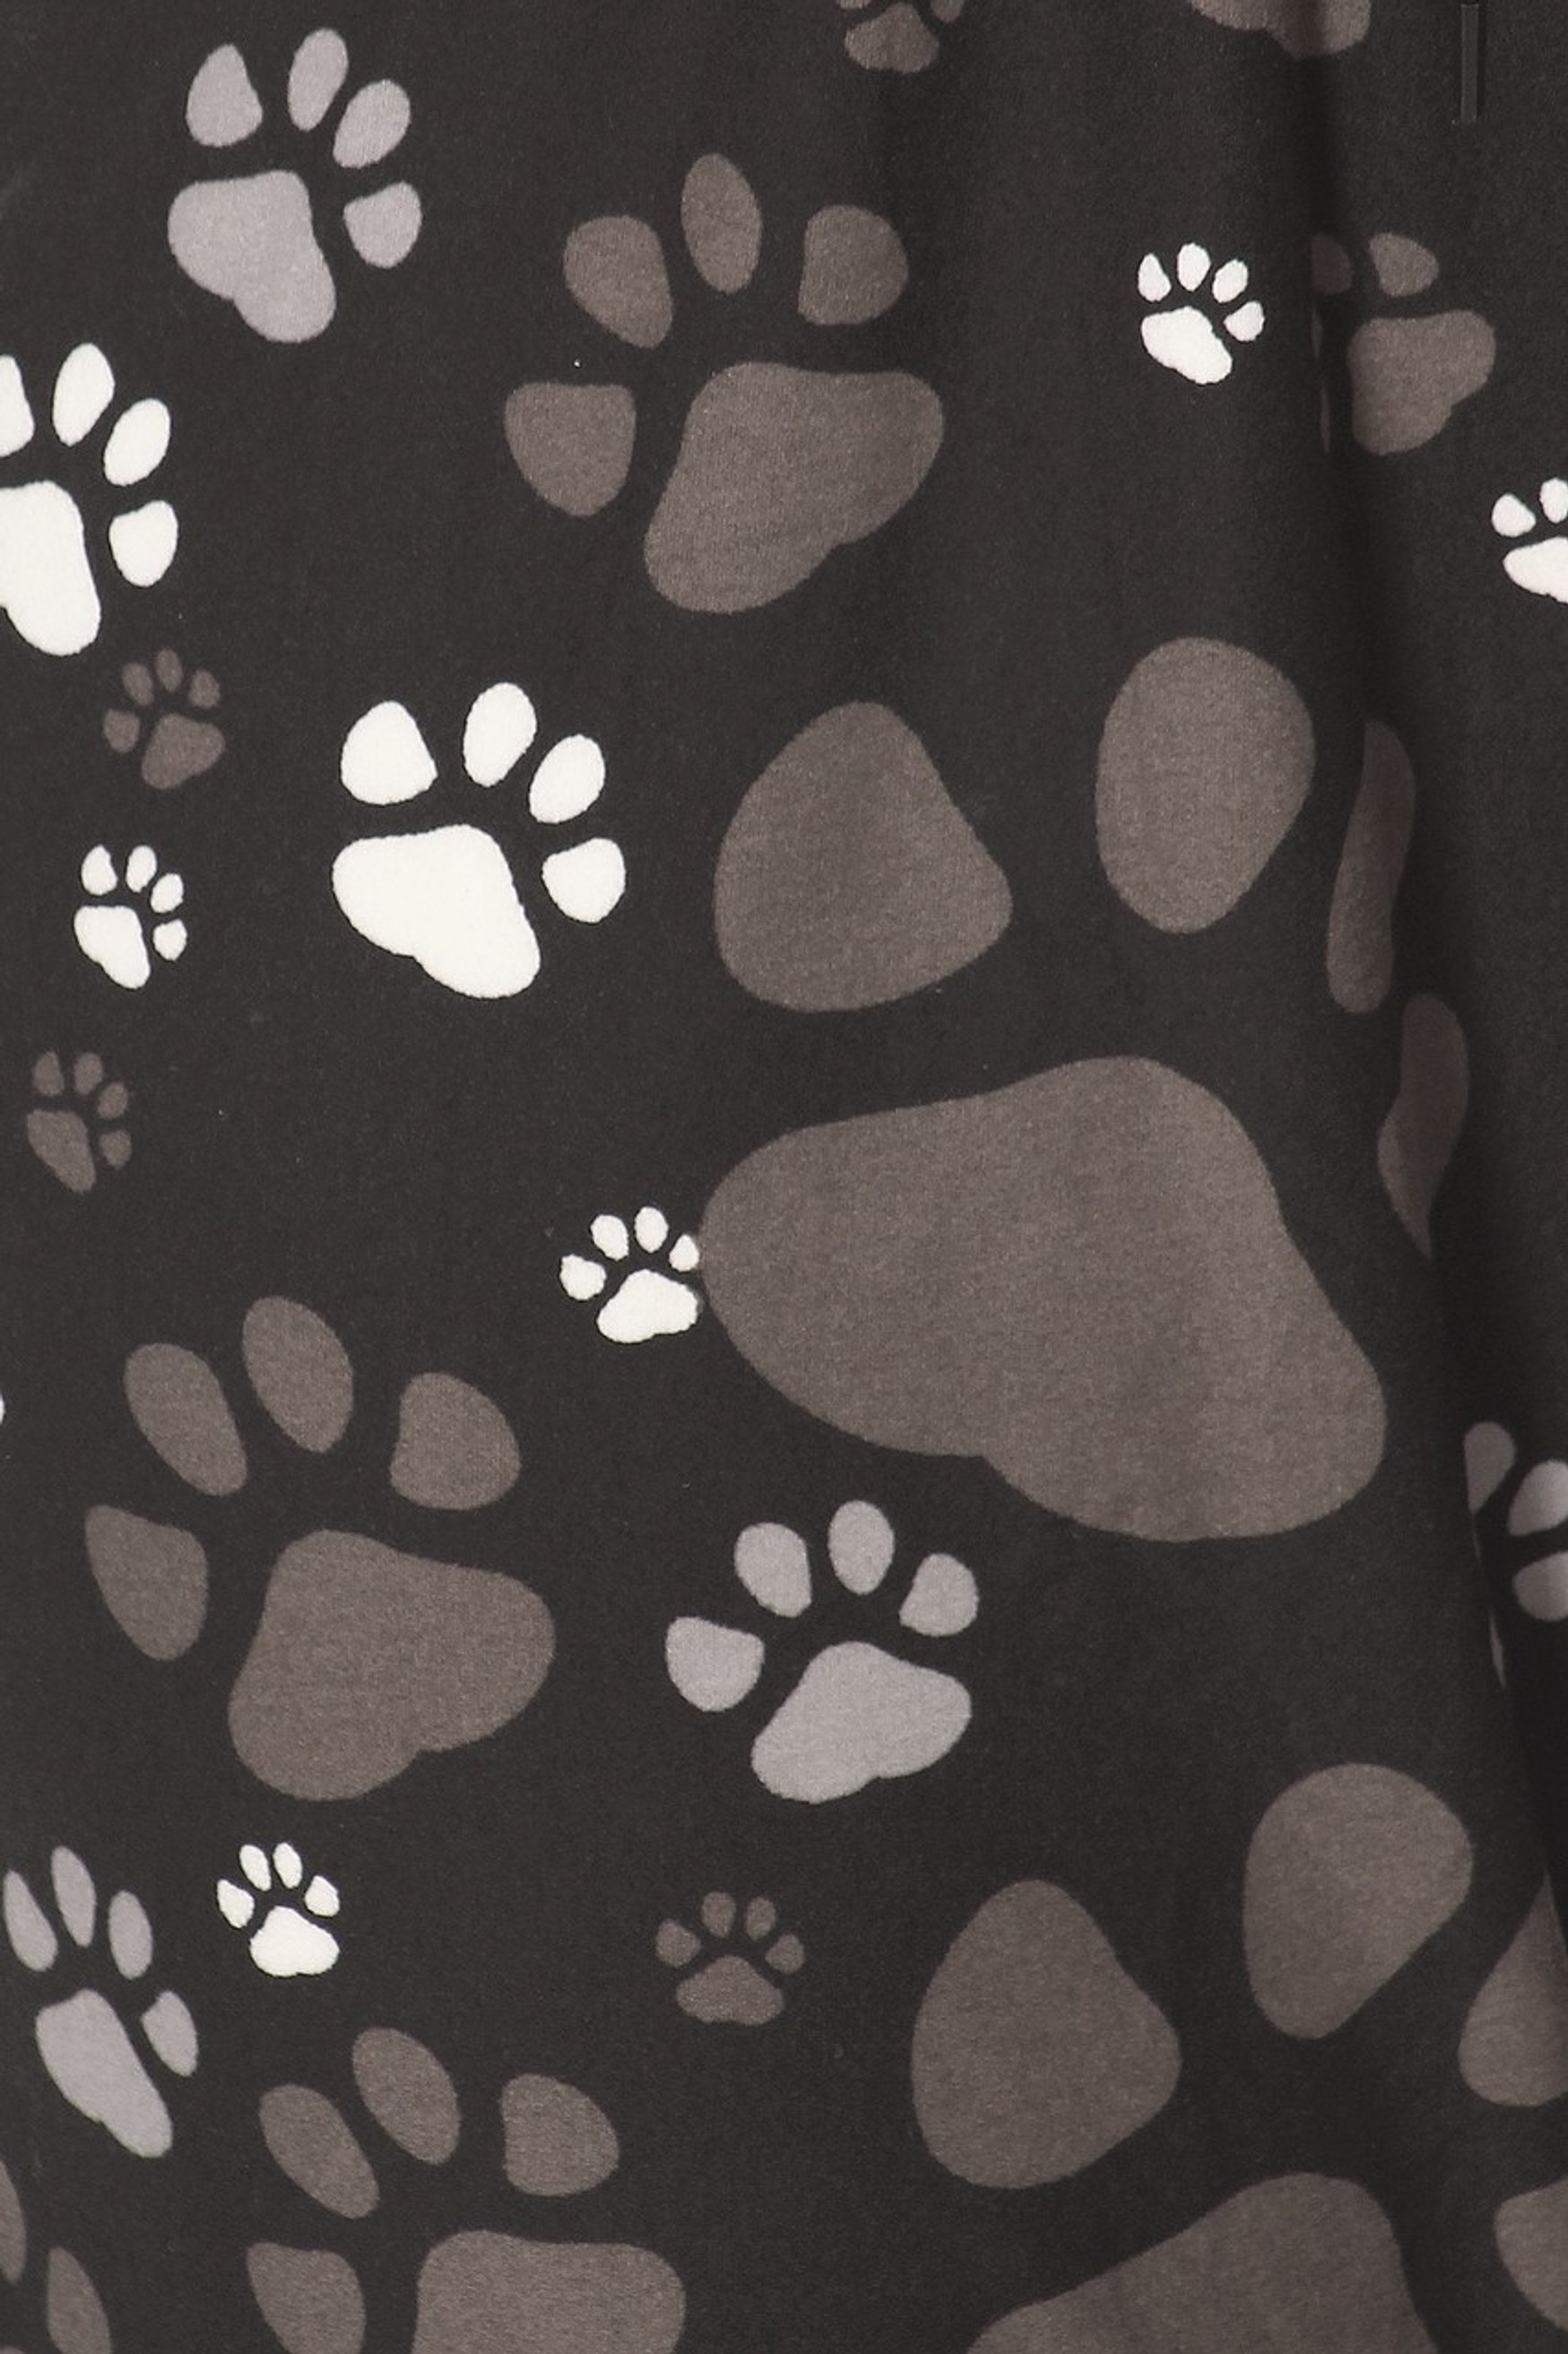 Buttery Soft Muddy Paw Print Joggers